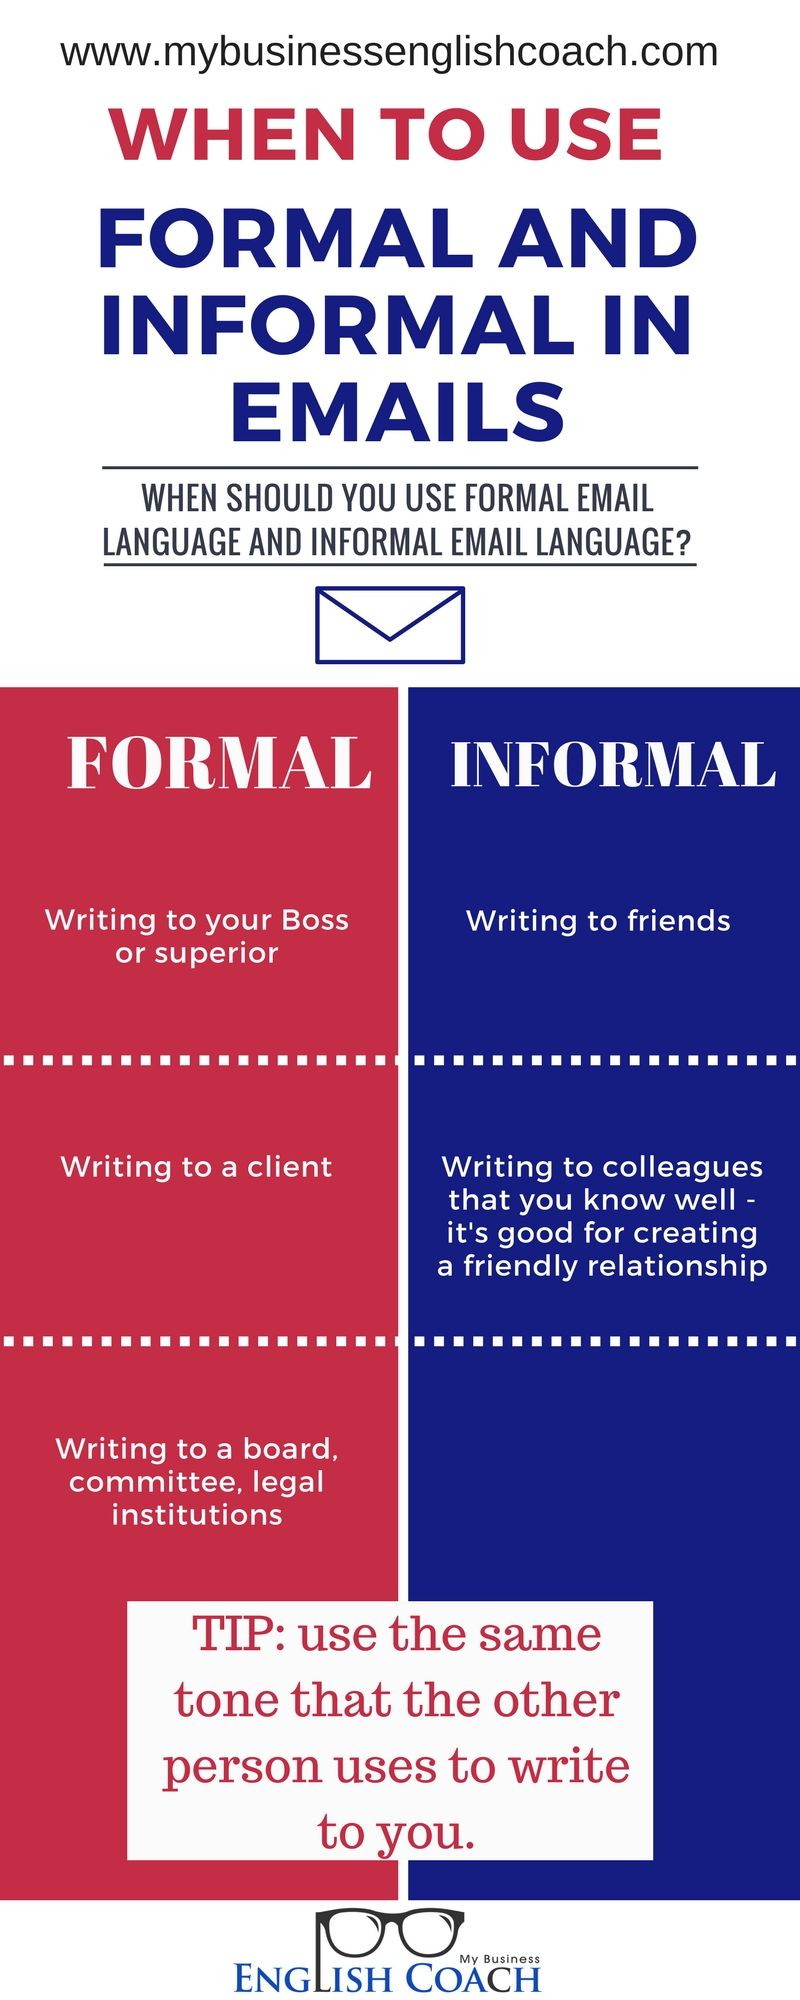 When To Use Formal And Informal Email English Business English